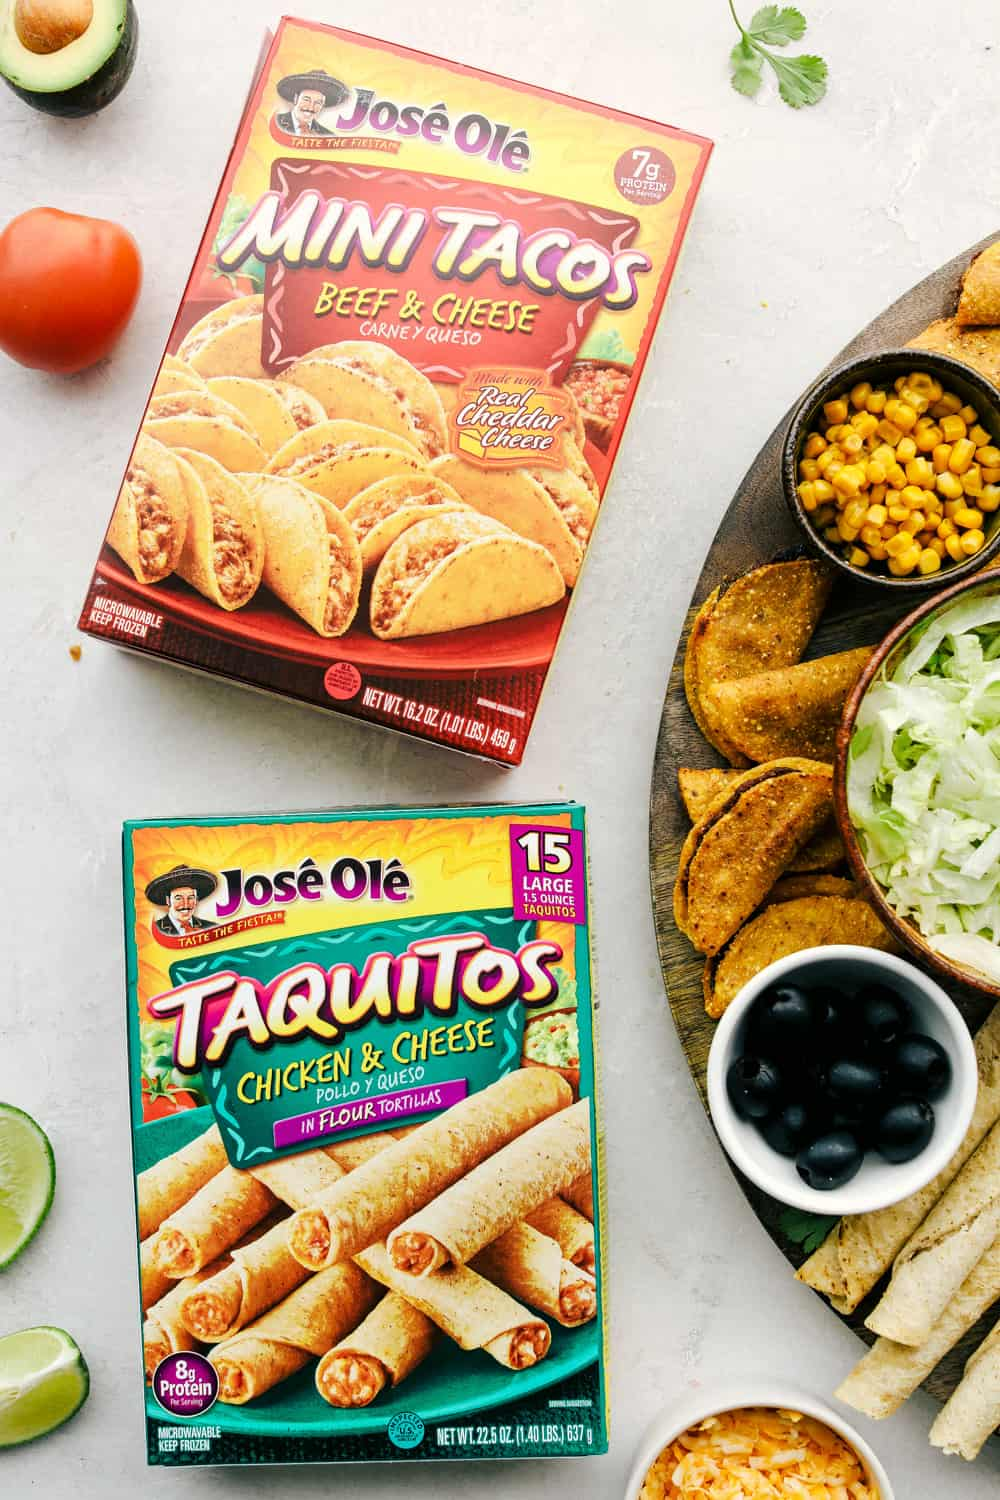 Mini tacos and taquitos in a box with the taco board on its side.